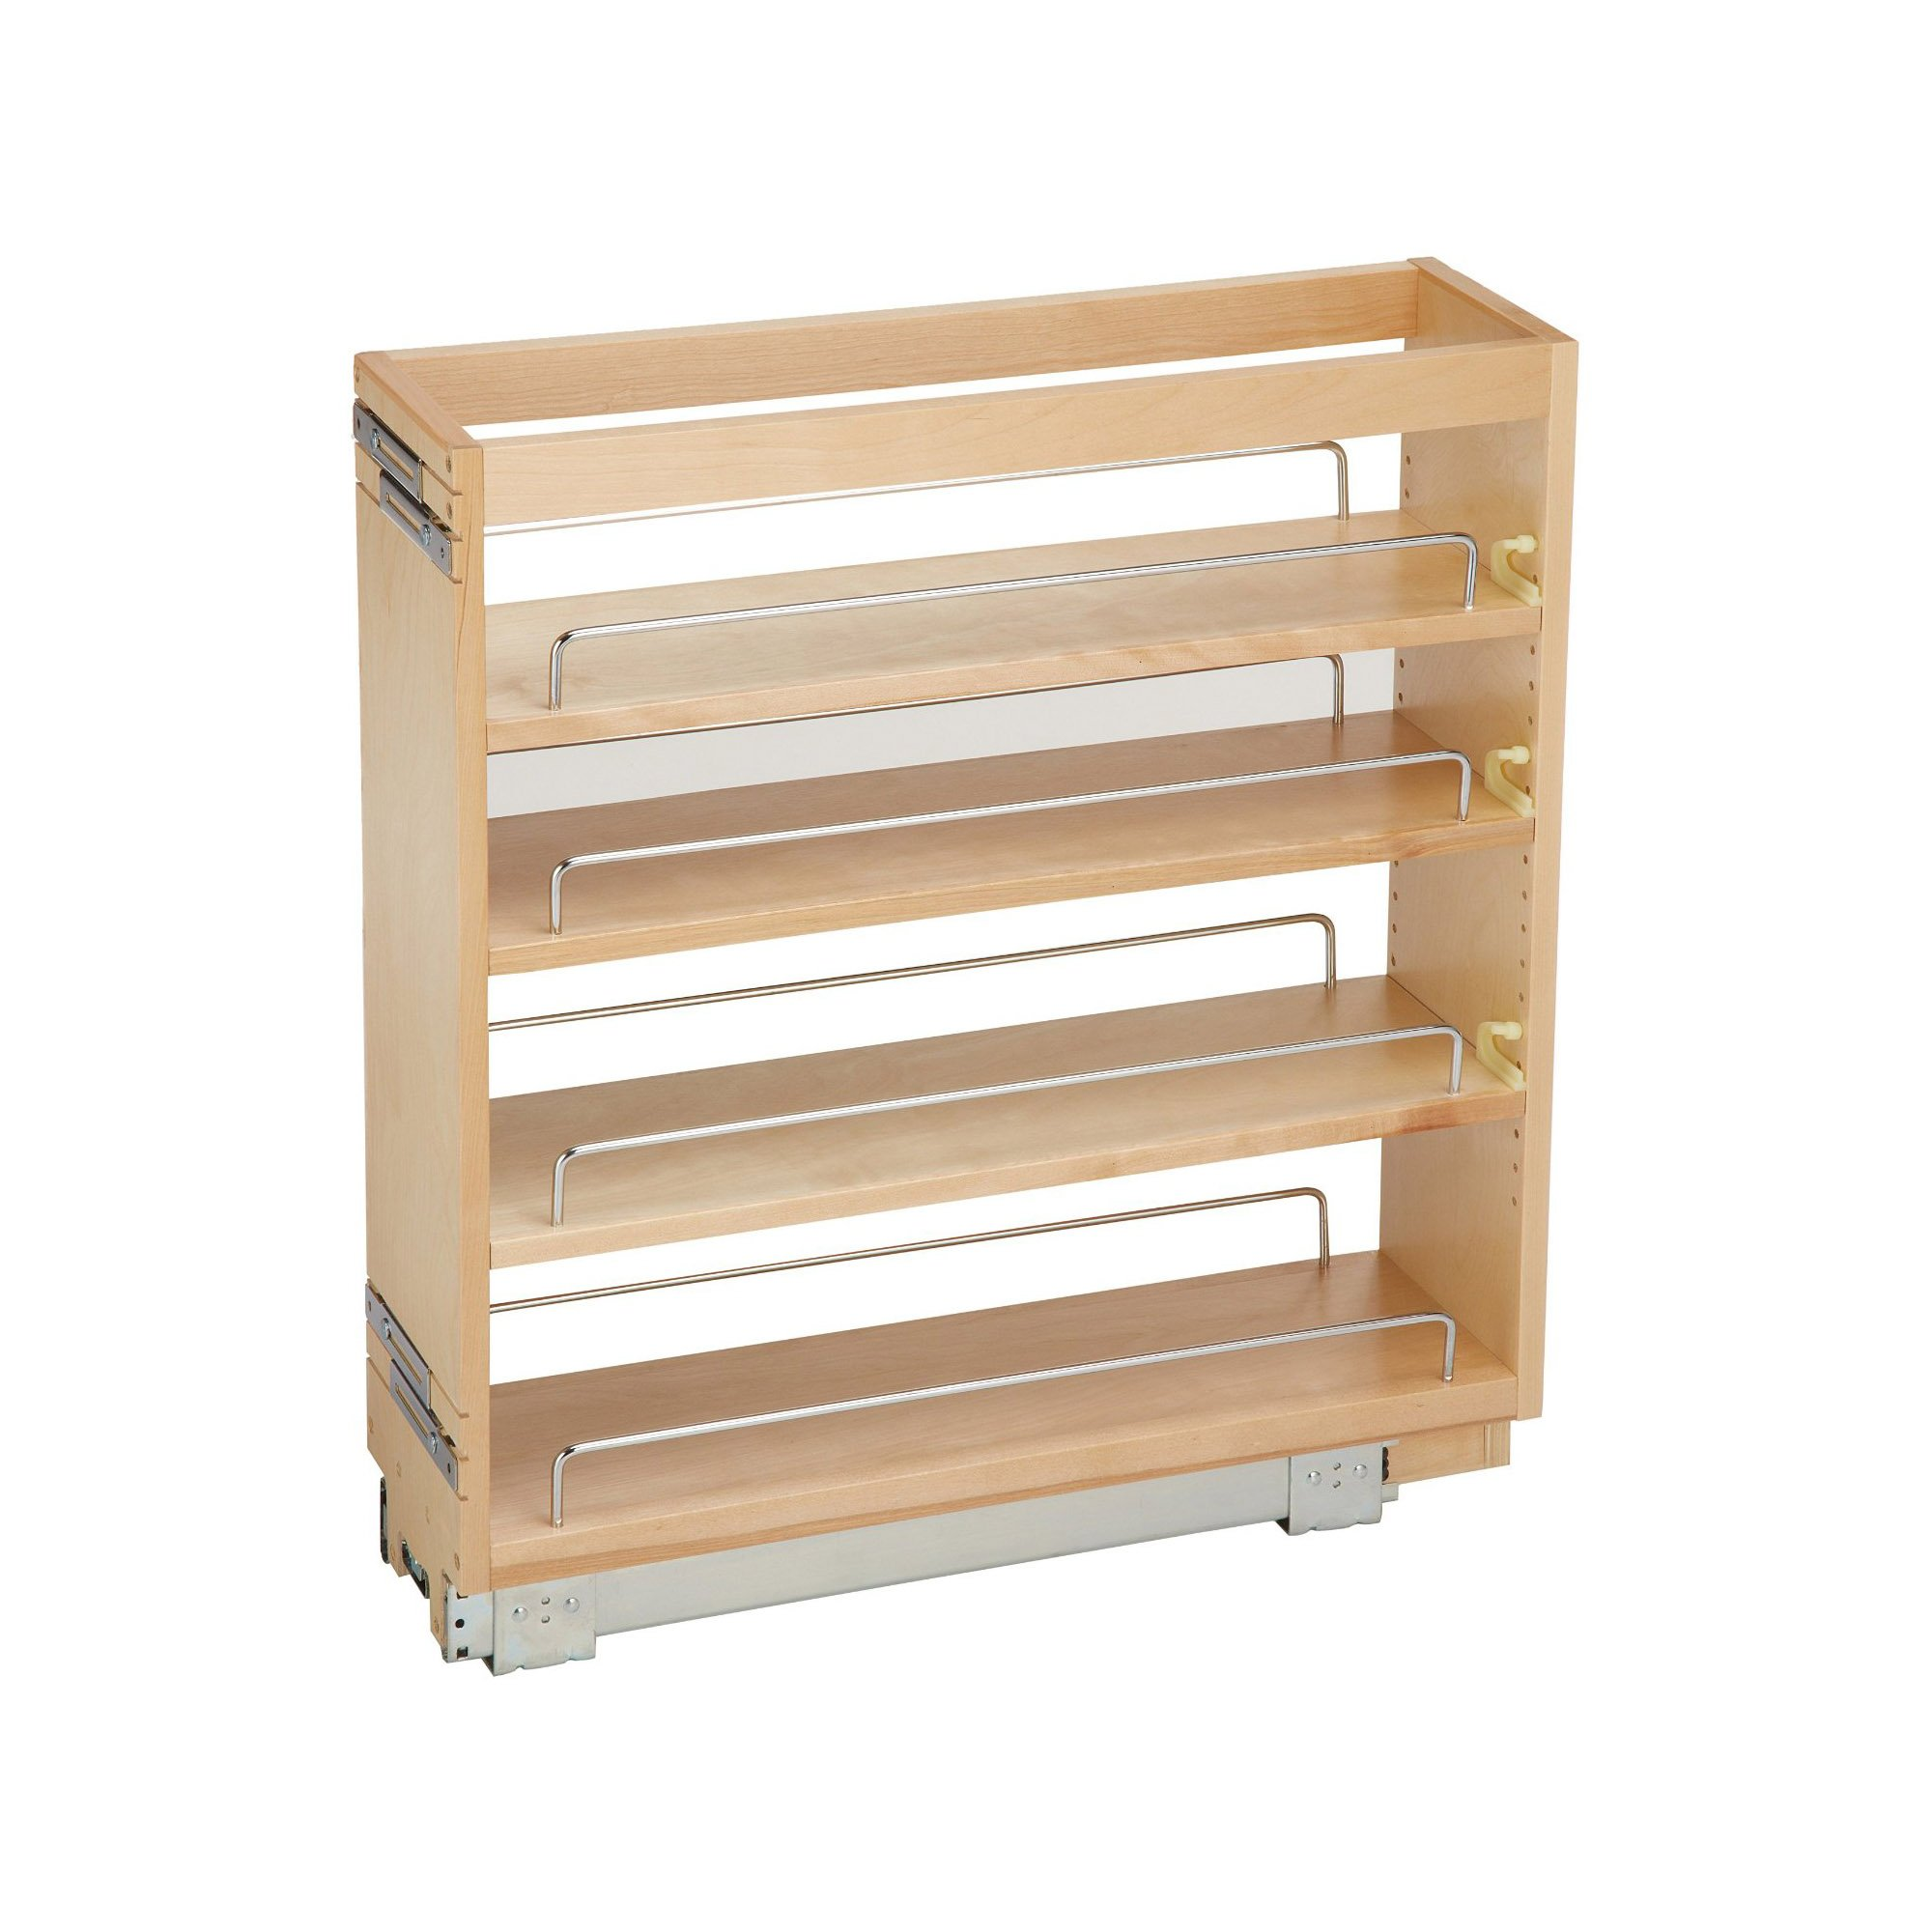 Rev-A-Shelf - 448-BC-6C - 6.5 in. Pull-Out Wood Base Cabinet Organizer by Rev-A-Shelf